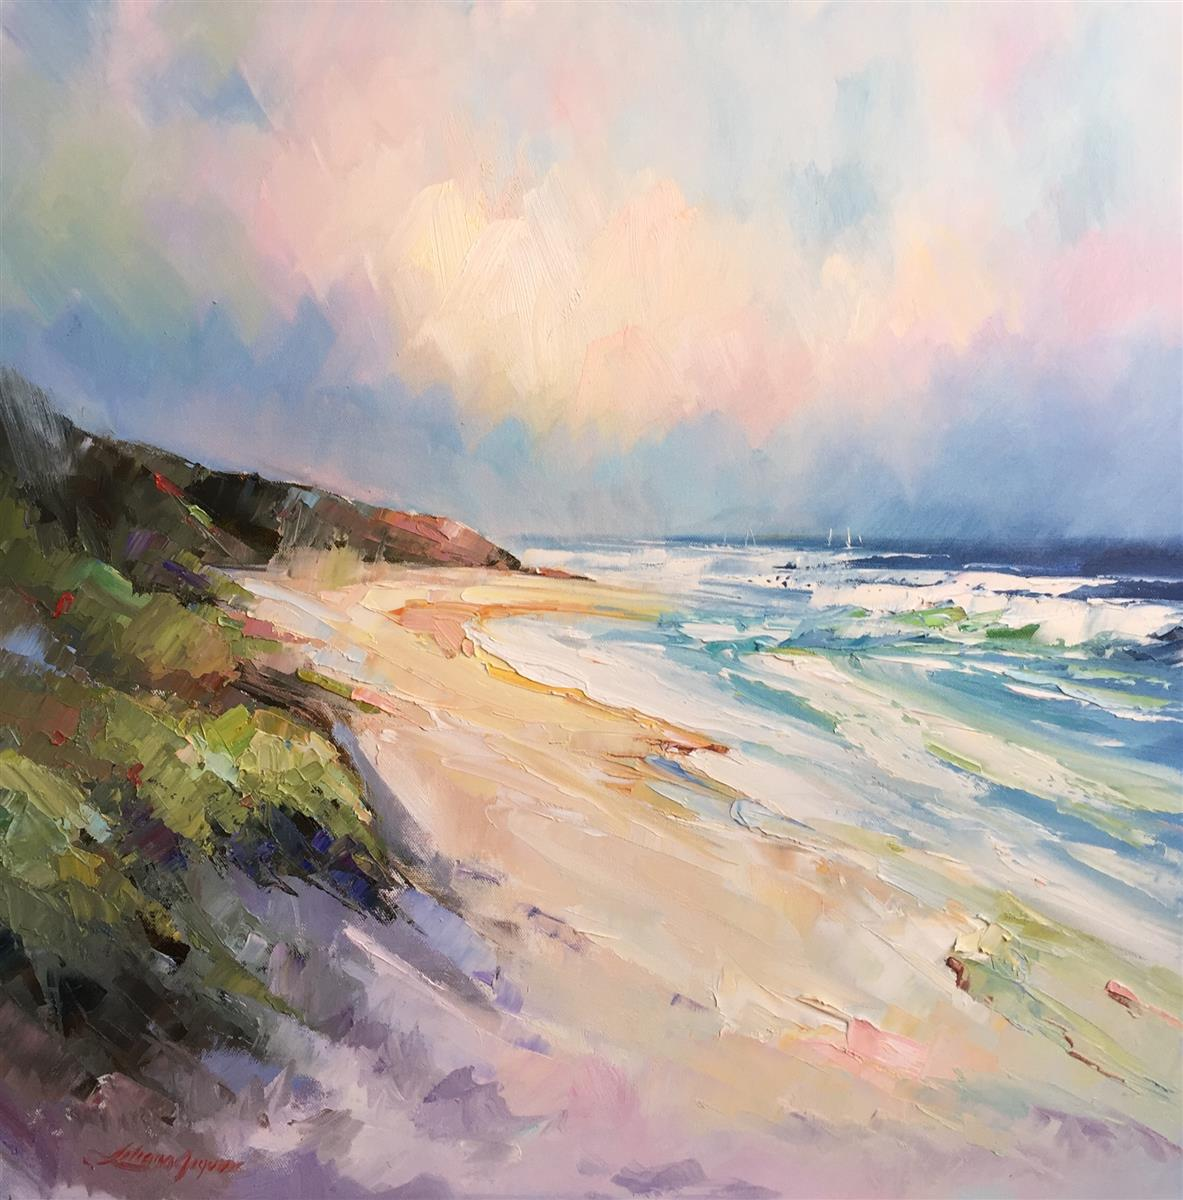 sand dunes at portsea back beach #2 painting liliana gigovic